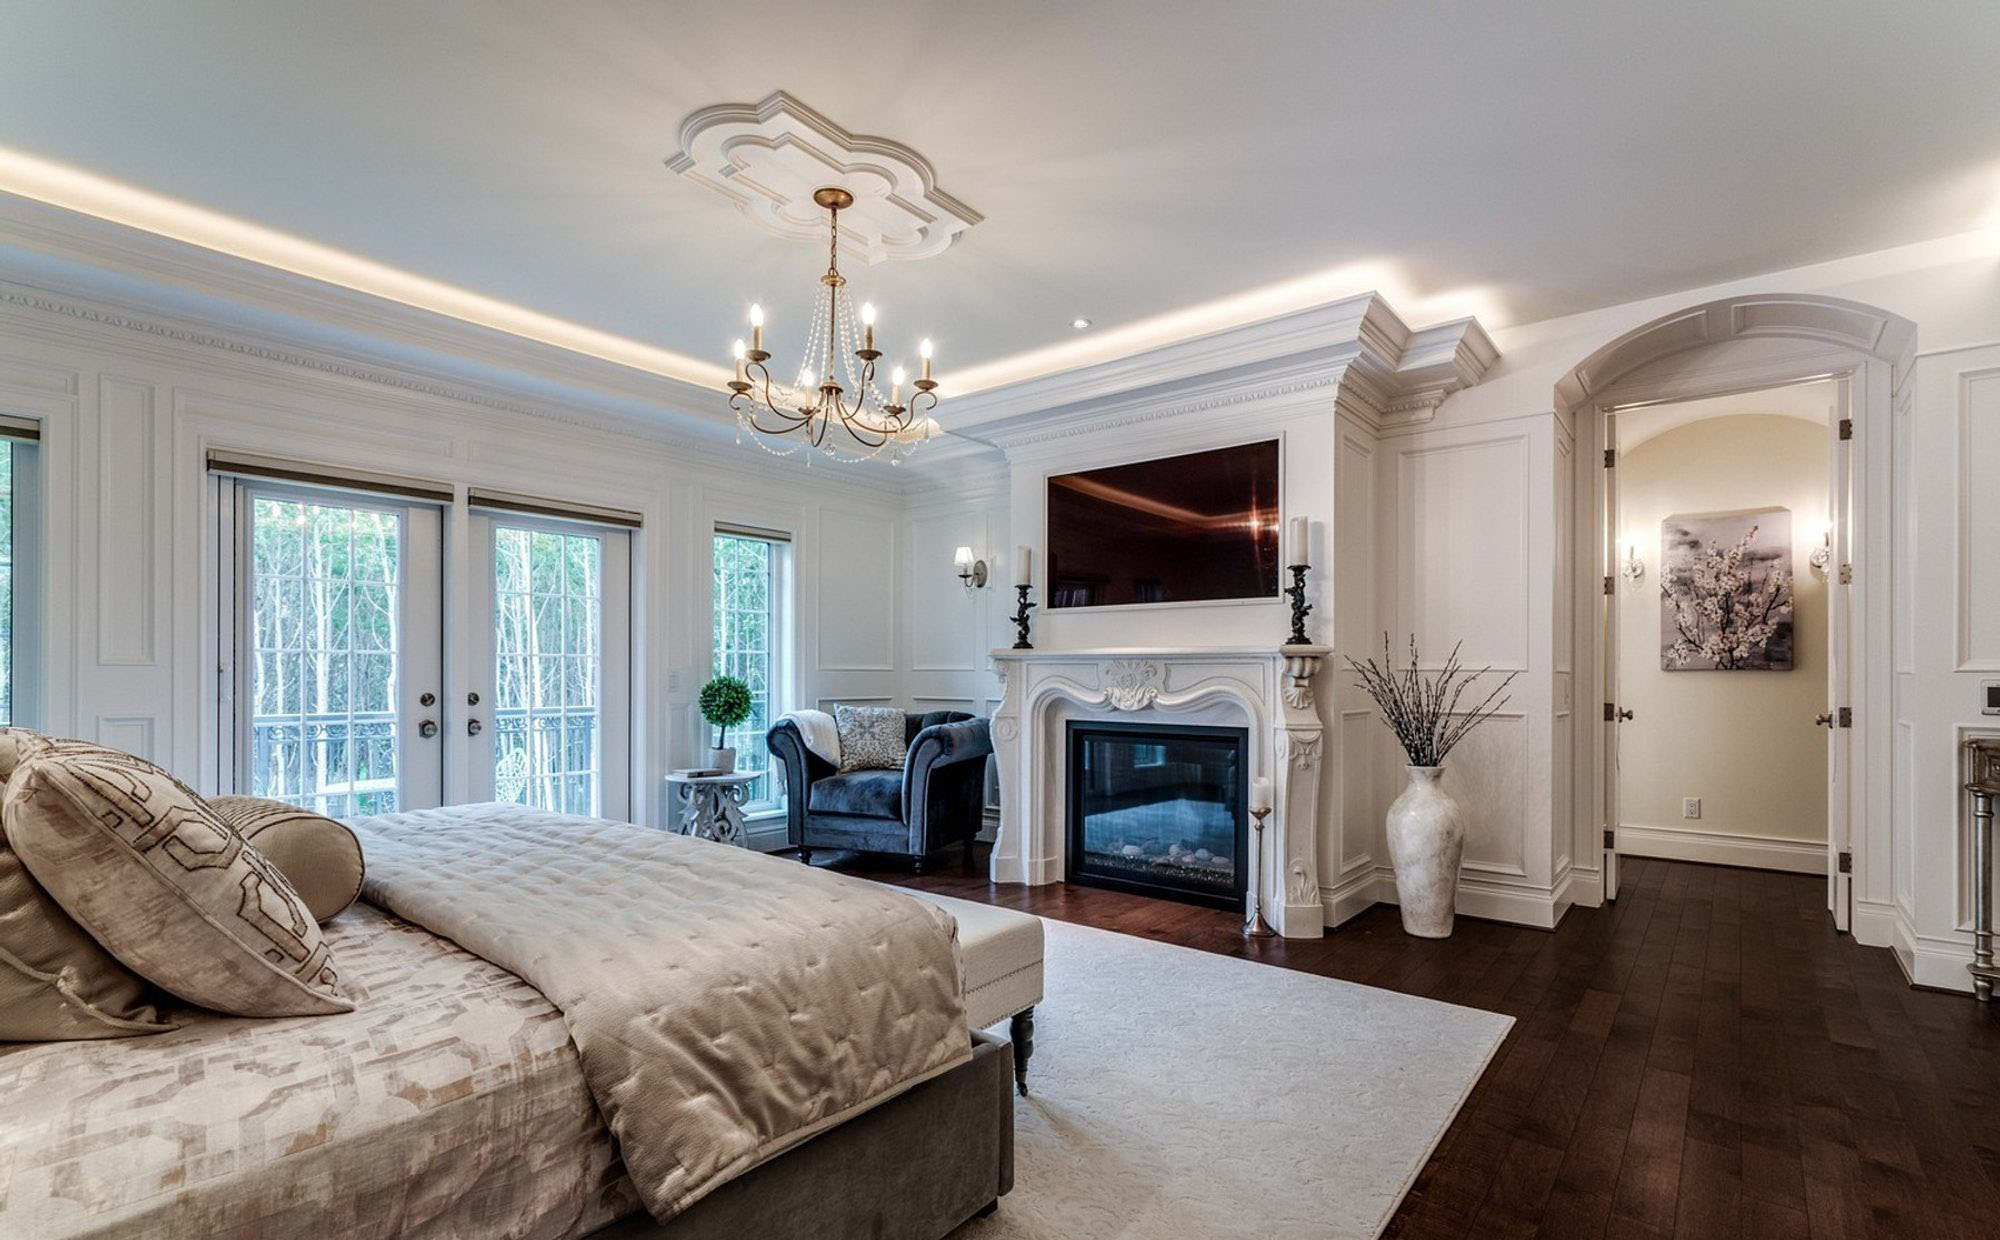 Master bedroom with built in gas fireplace and wall paneling surround.